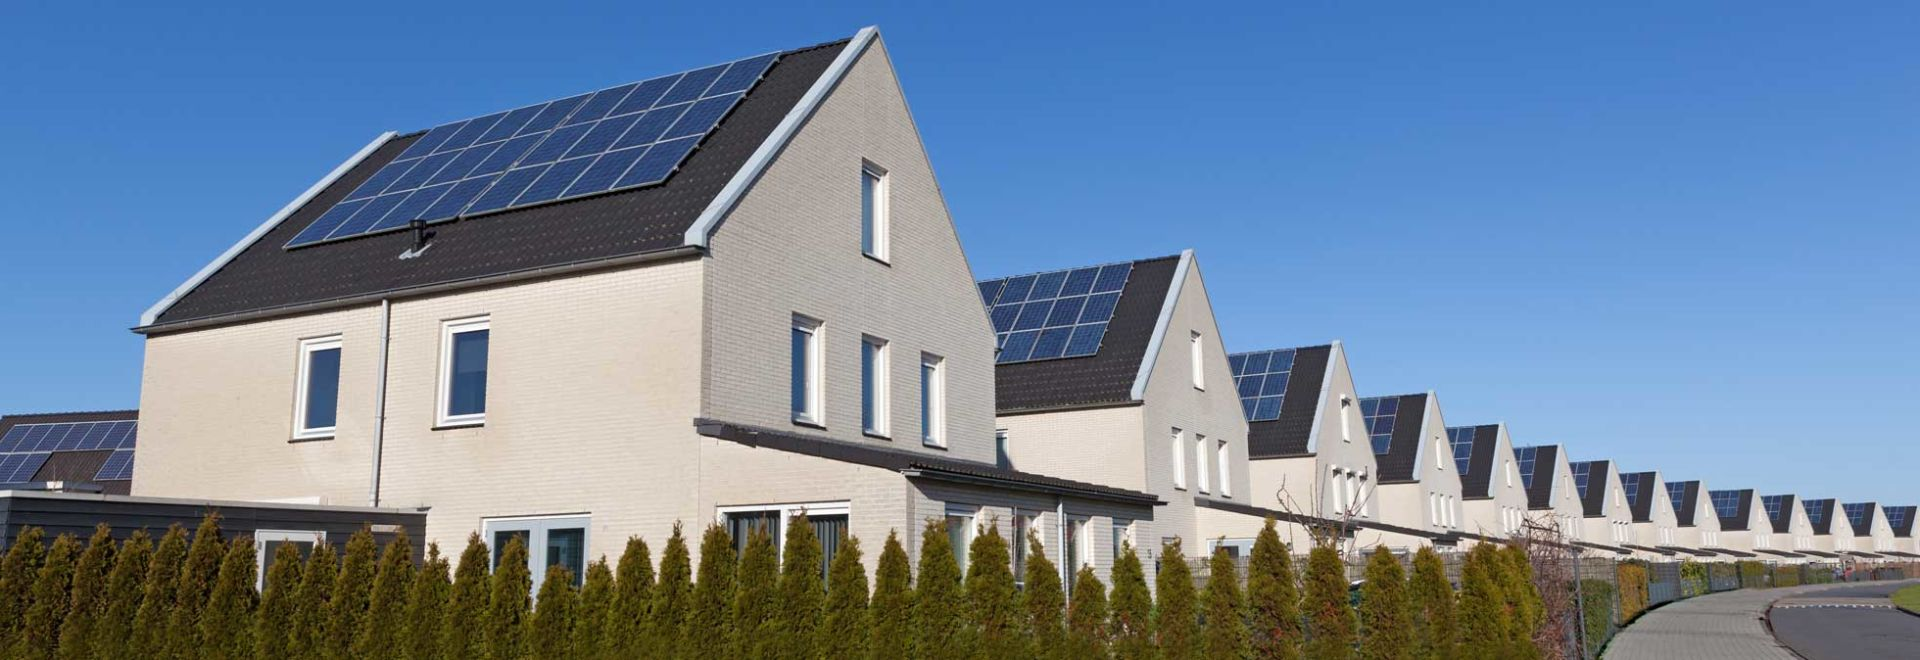 Planning For Solar In 2018 Solaris Tips When Adding Circuit Breaker Diy Your Home Is Now Continuing To See Faster Growth The Us Both Residential And Commercial Installations Much With Rest Of Technological World